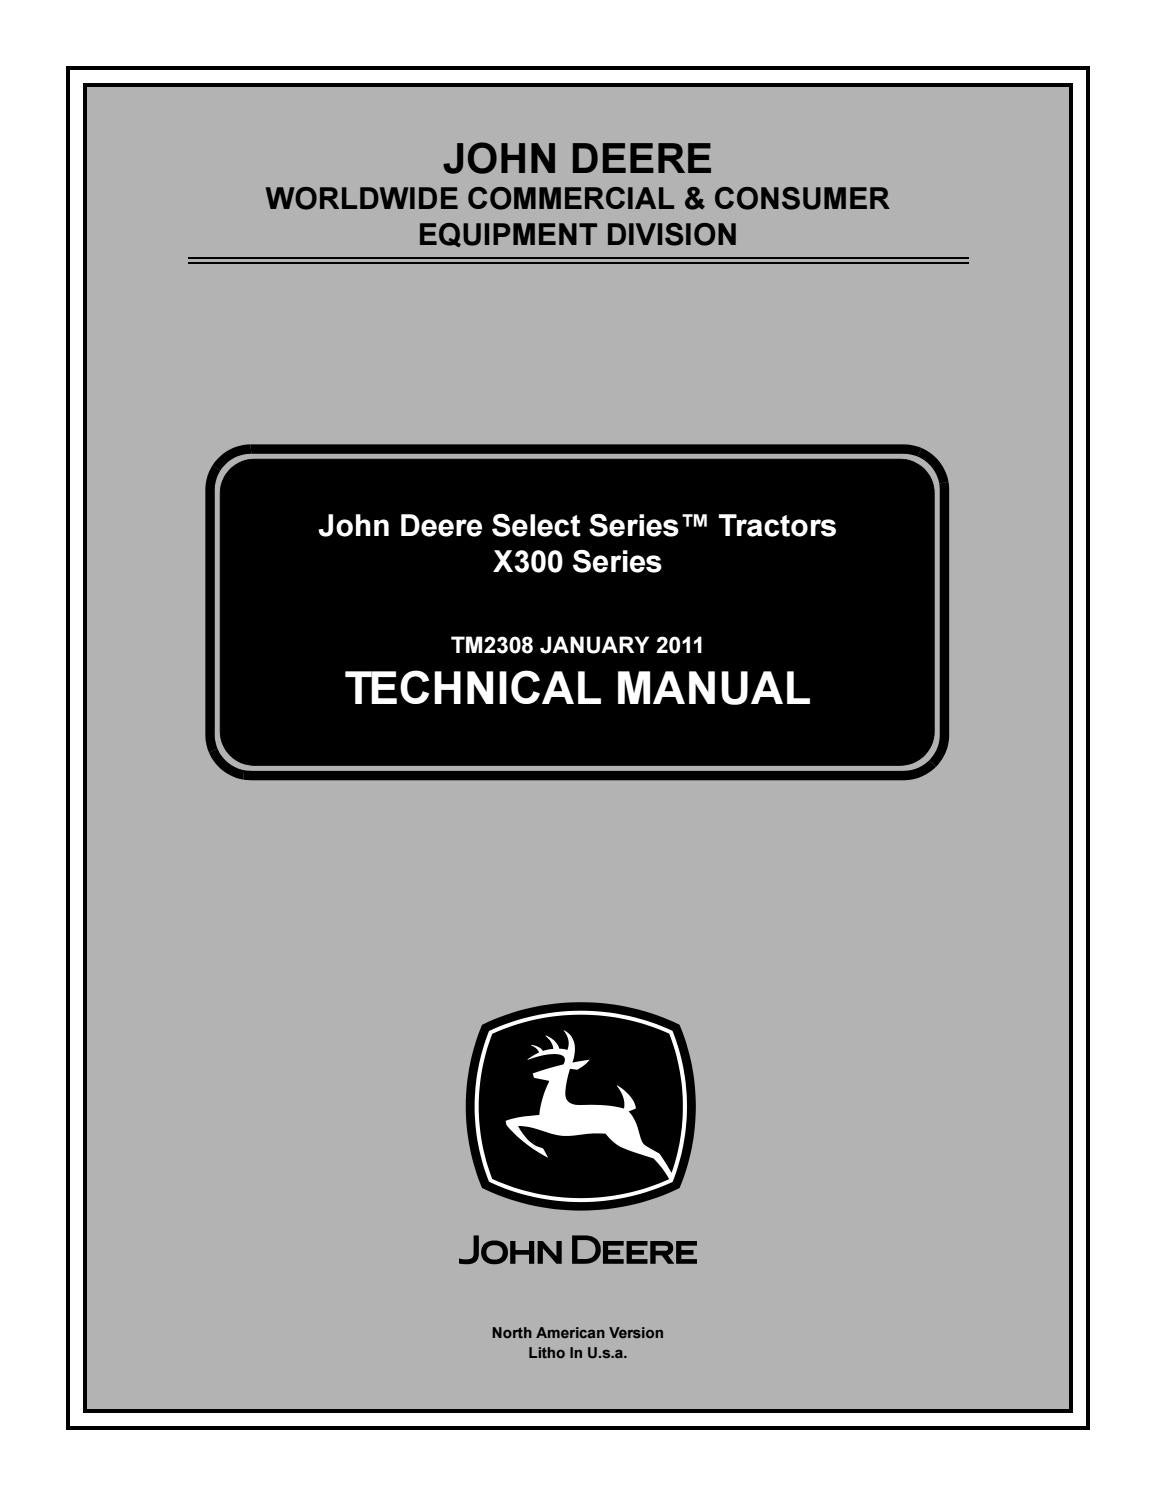 John deere x360 lawn tractor service repair manual by ... on